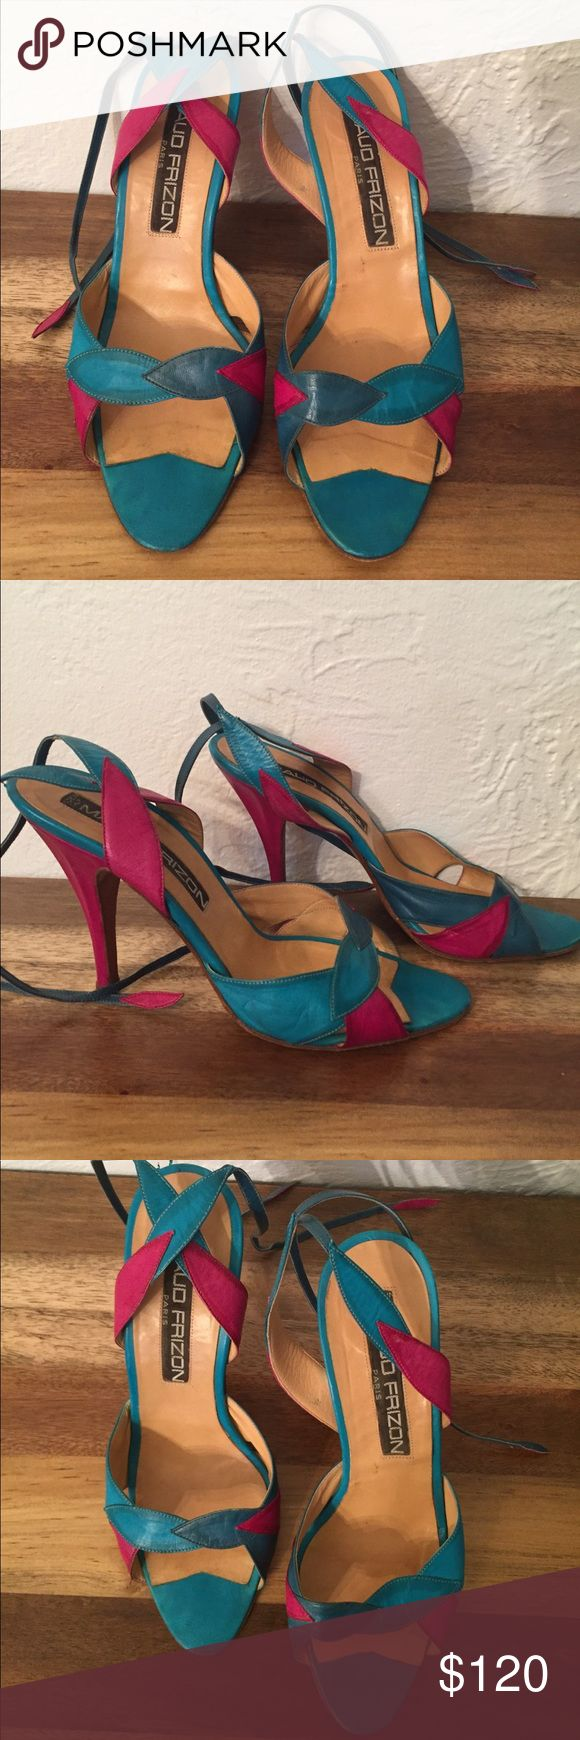 Vintage Maud Frizon turquoise & pink heels size 8 Multi color vintage heels size 8 made in France Maud Frizon Shoes Heels